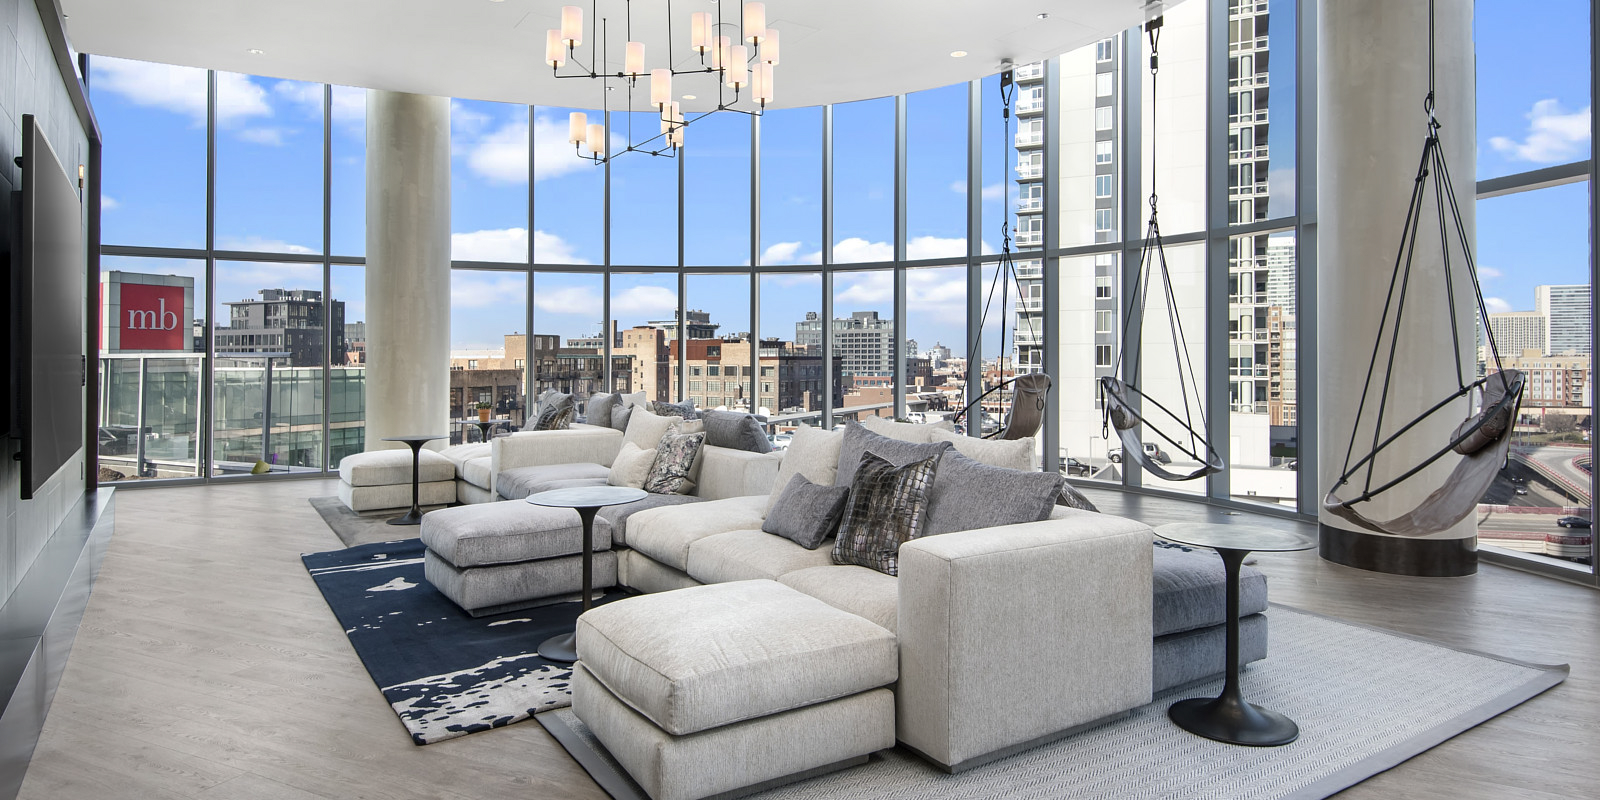 Luxury Apartments For Rent Near Looking For Luxury Apartments For Rent Near West Loop? 28